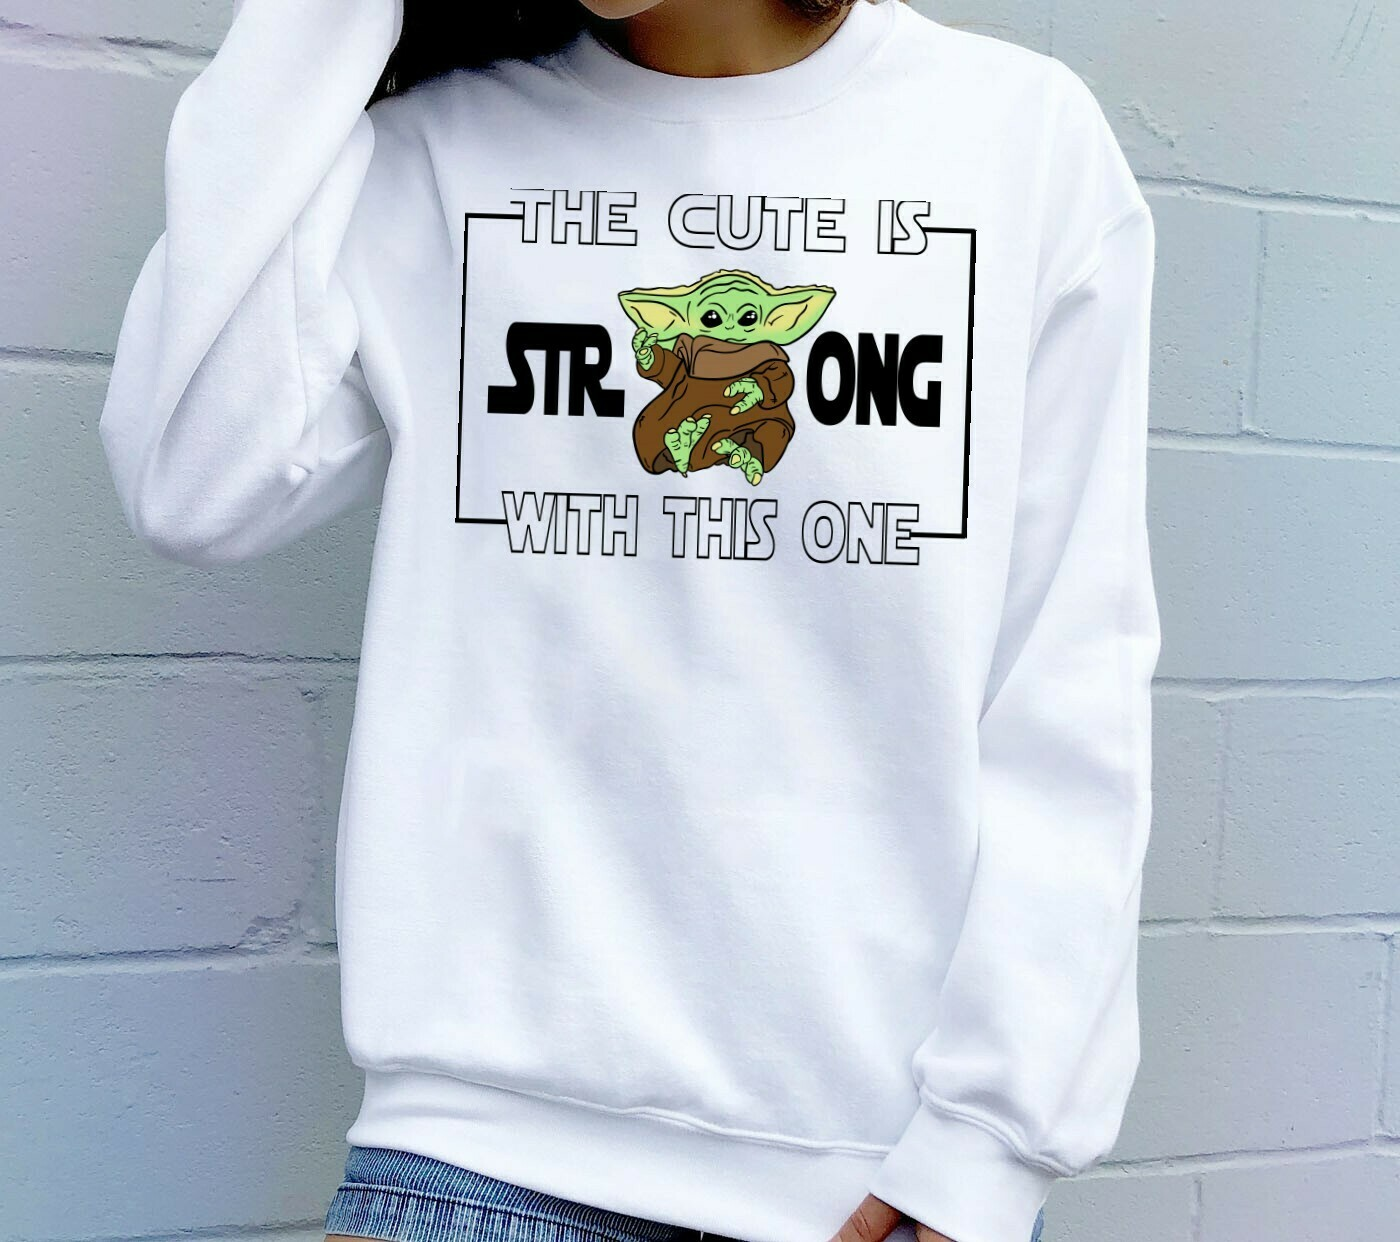 Baby Yoda The Cute Is Strong With This One,the Child Novelty Gift,The Mandalorian Star Wars The Rise of Skywalker,Star Galaxy Fans T shirt Long Sleeve Sweatshirt Hoodie Jolly Family Gifts